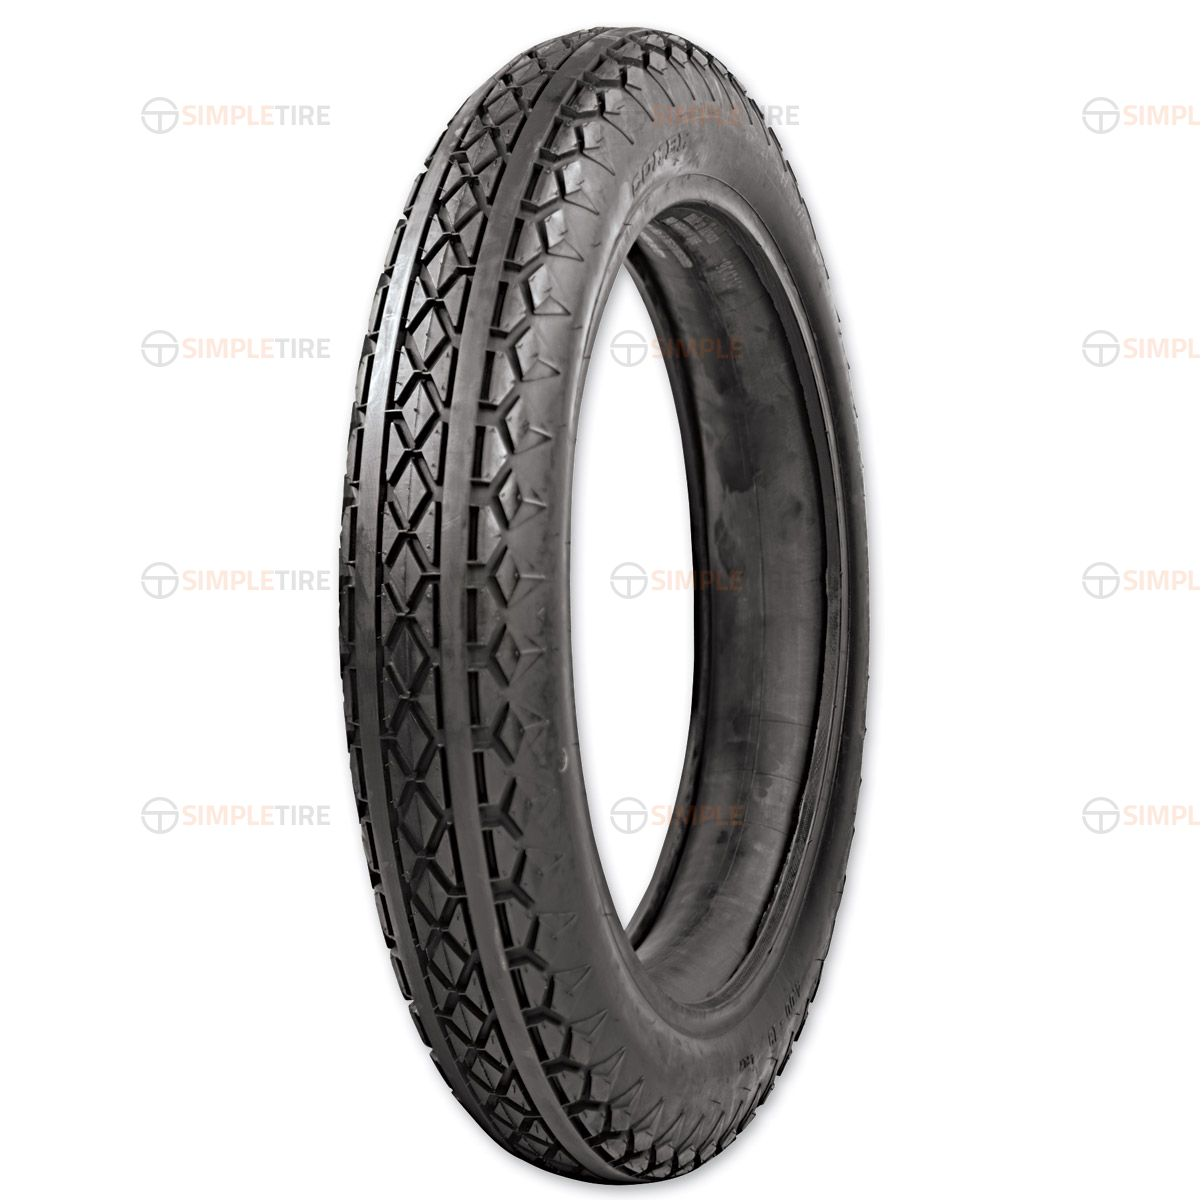 71370 450/-18 Diamond Tread Coker